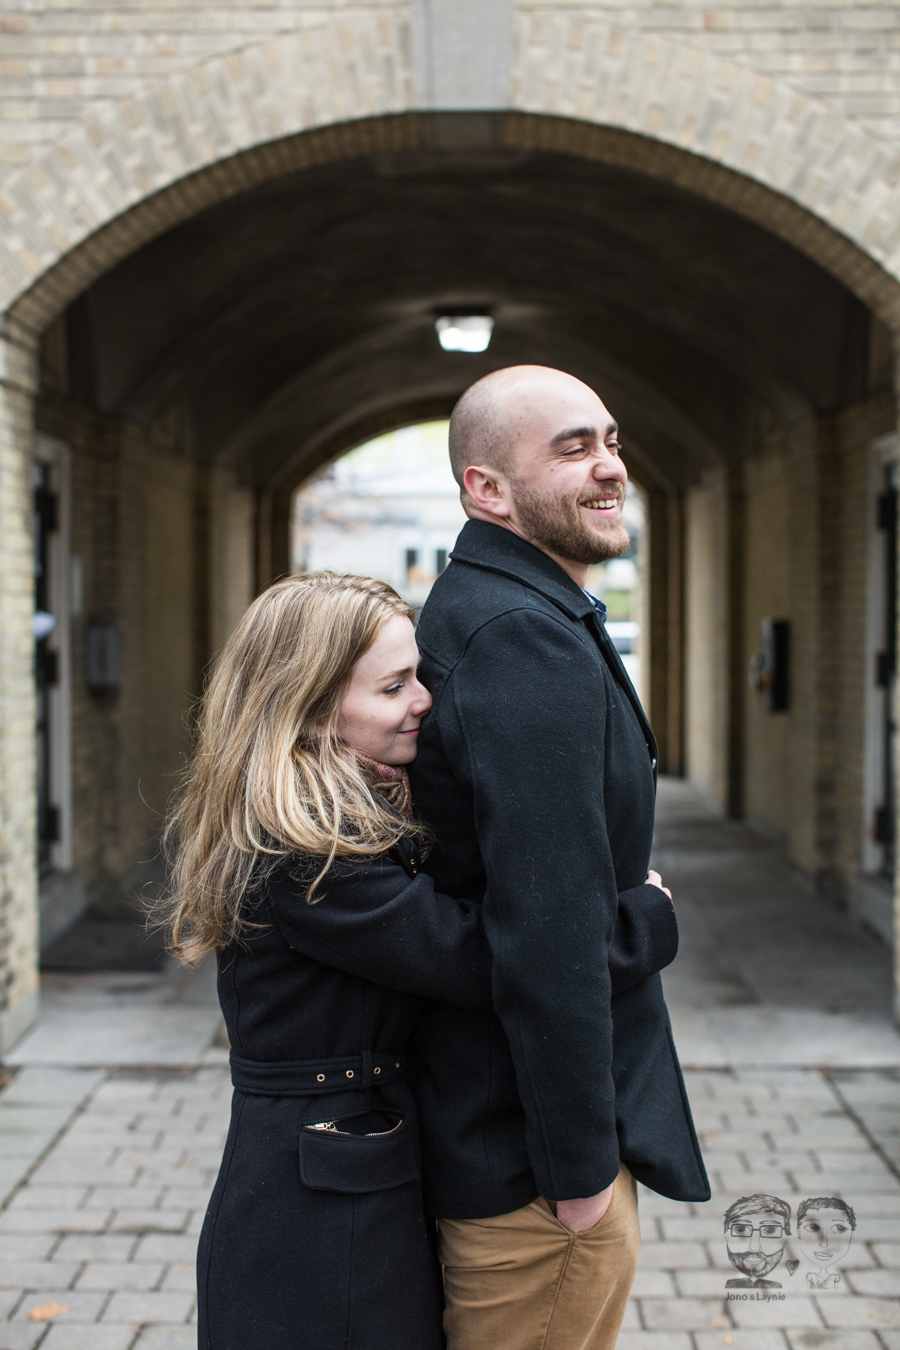 008University of Toronto e-session-Jono & Laynie Co.jpg